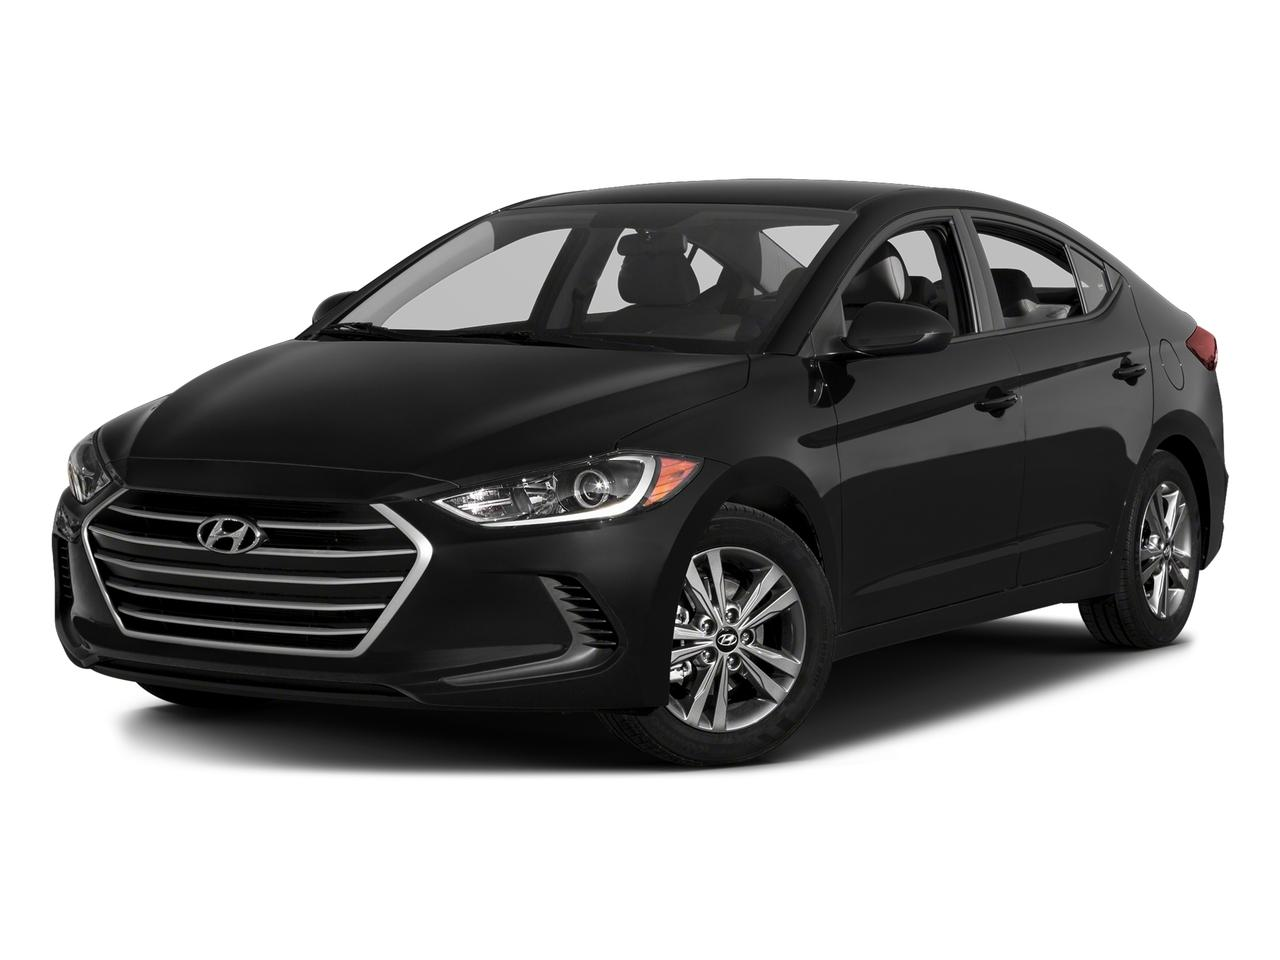 2018 Hyundai Elantra Vehicle Photo in Merrillville, IN 46410